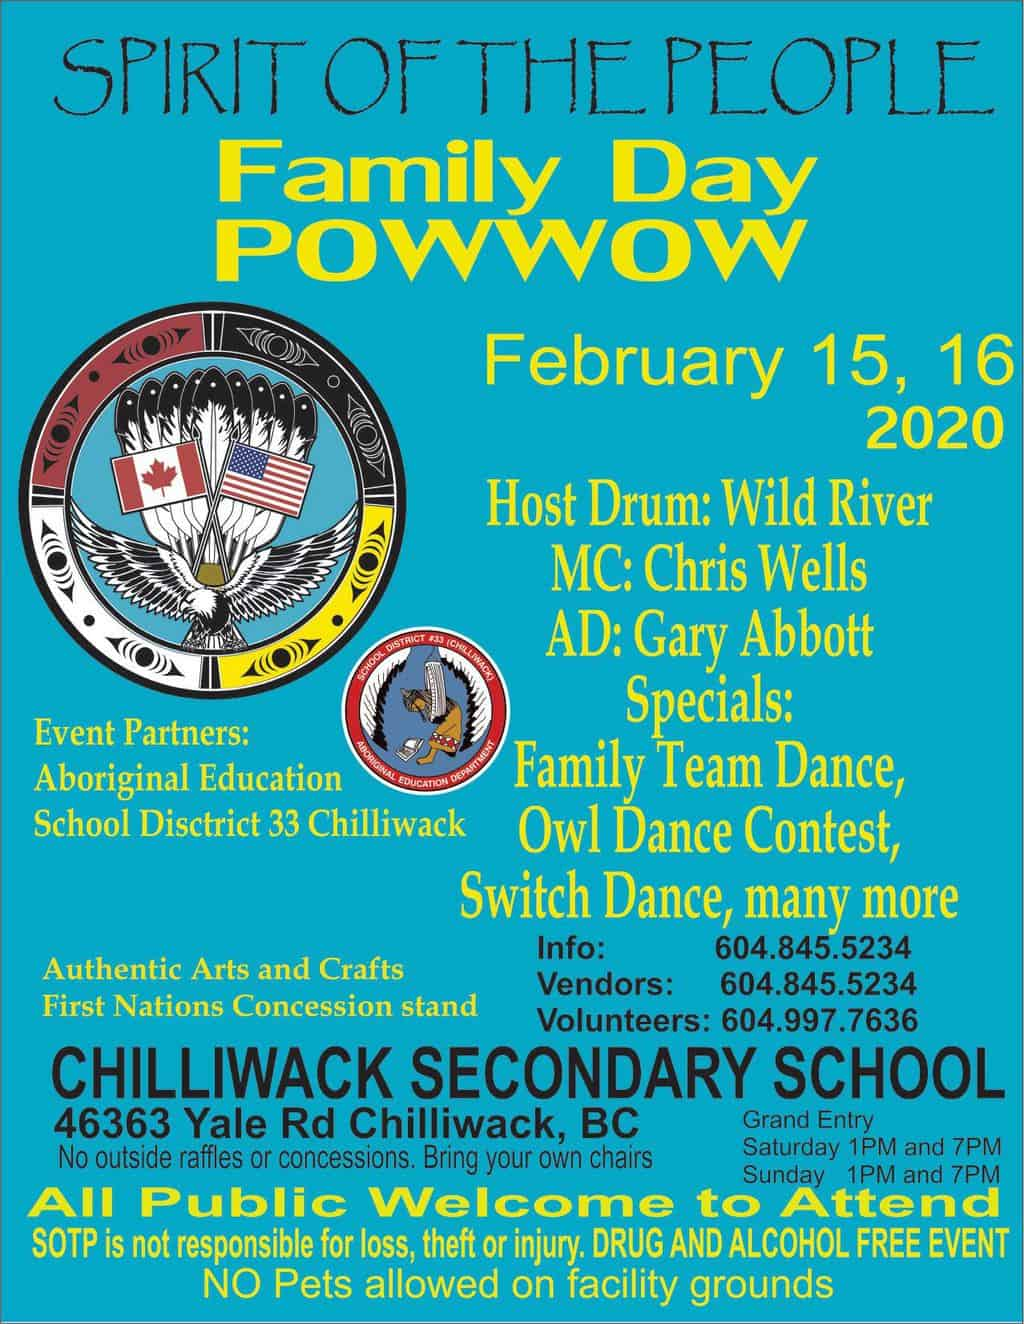 Spirit of the People - Family Day Powwow